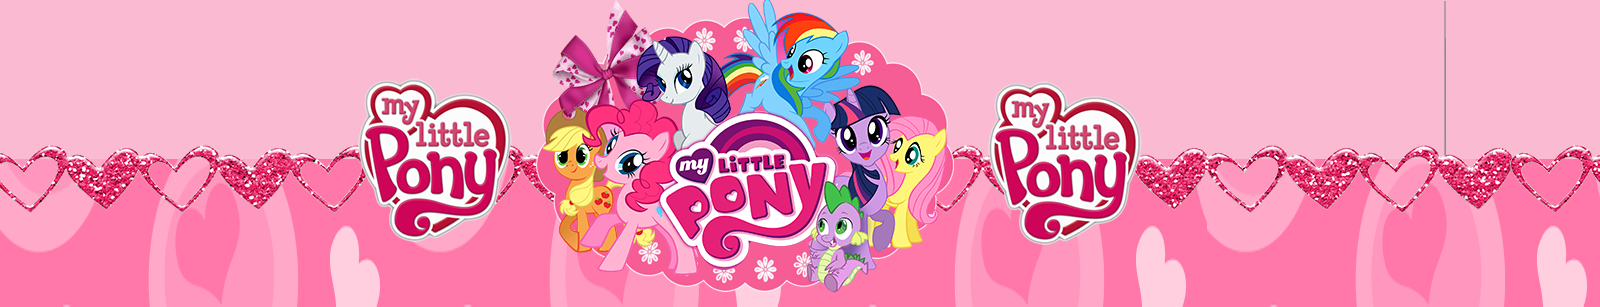 My Little Pony Free Printable Kit Oh My Fiesta For Geeks